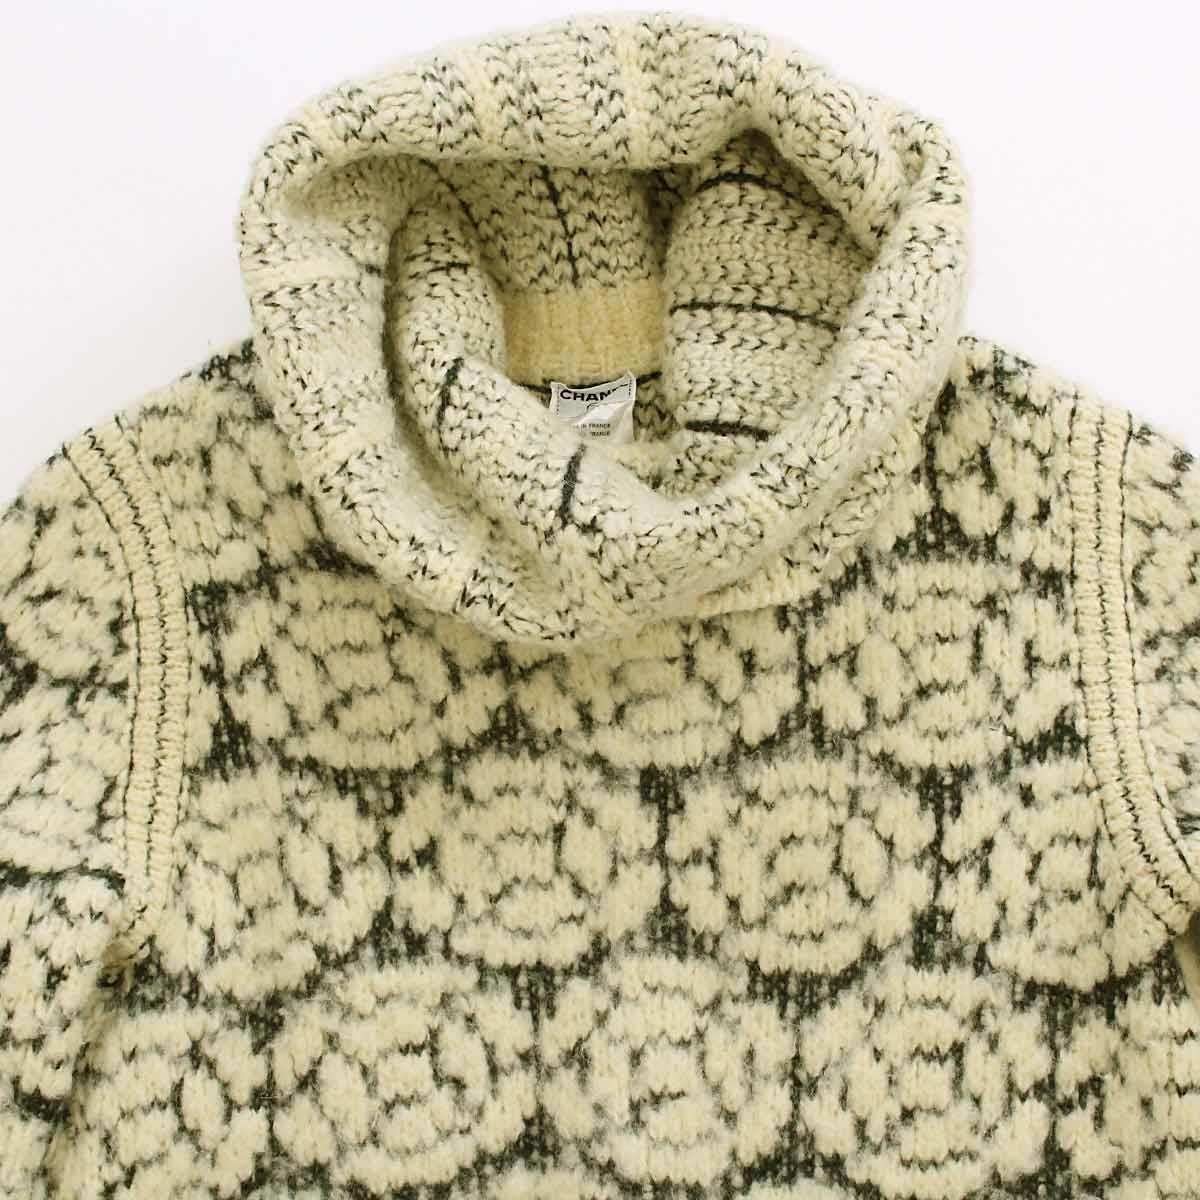 Knitting Pattern For Tortoise Jumper : Purpose Inc Rakuten Global Market: Chanel CHANEL turtle knit sweater patter...